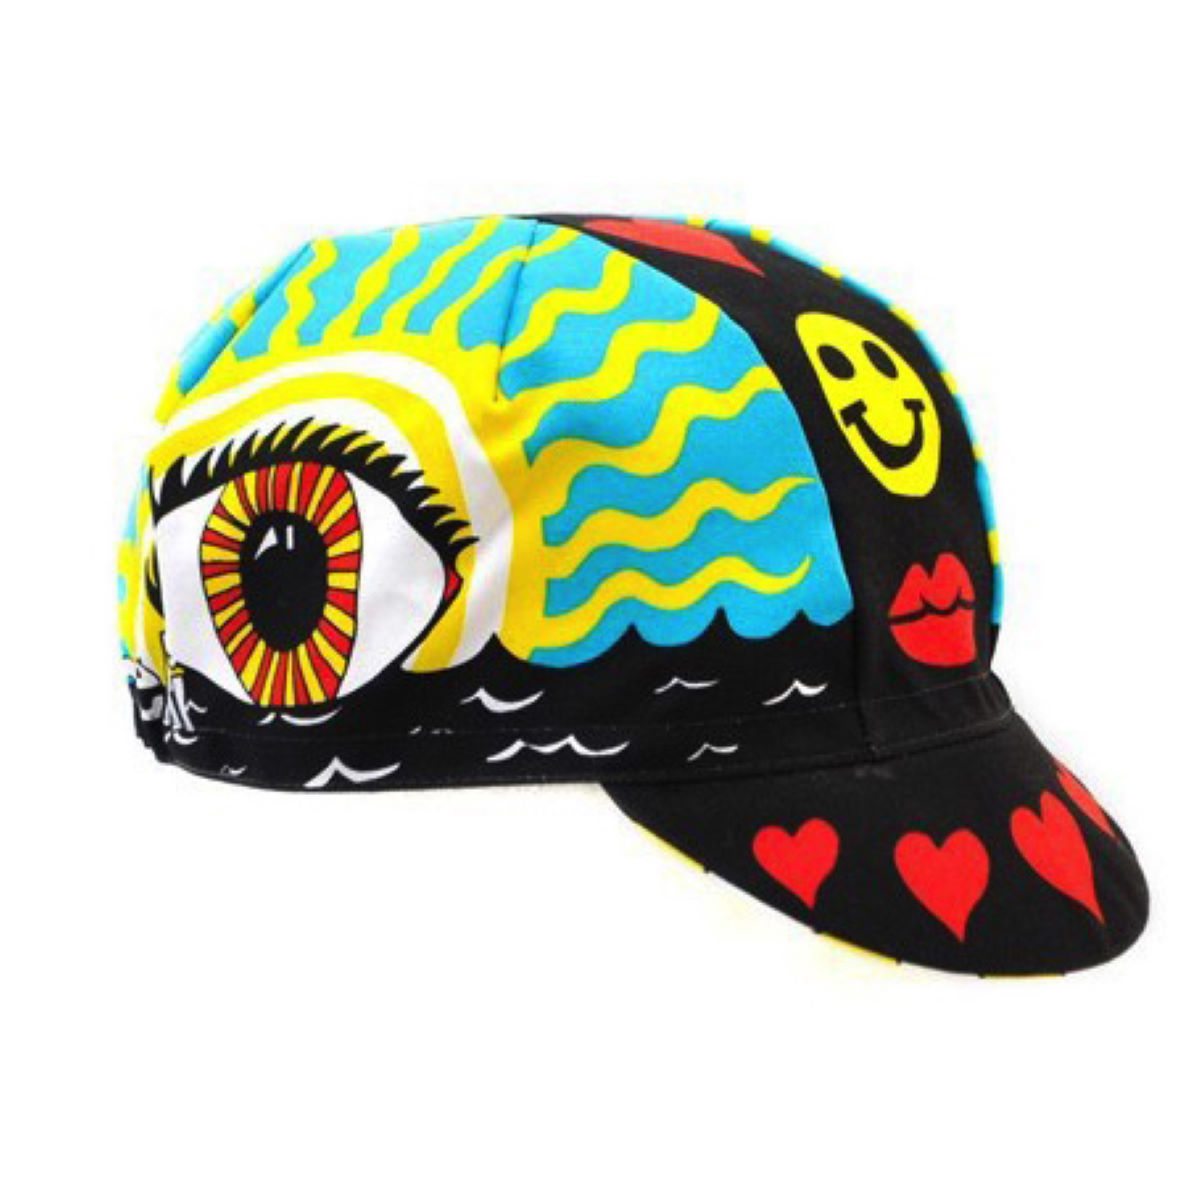 Casquette Cinelli Eye of the Storm (coton) - Taille unique Multi